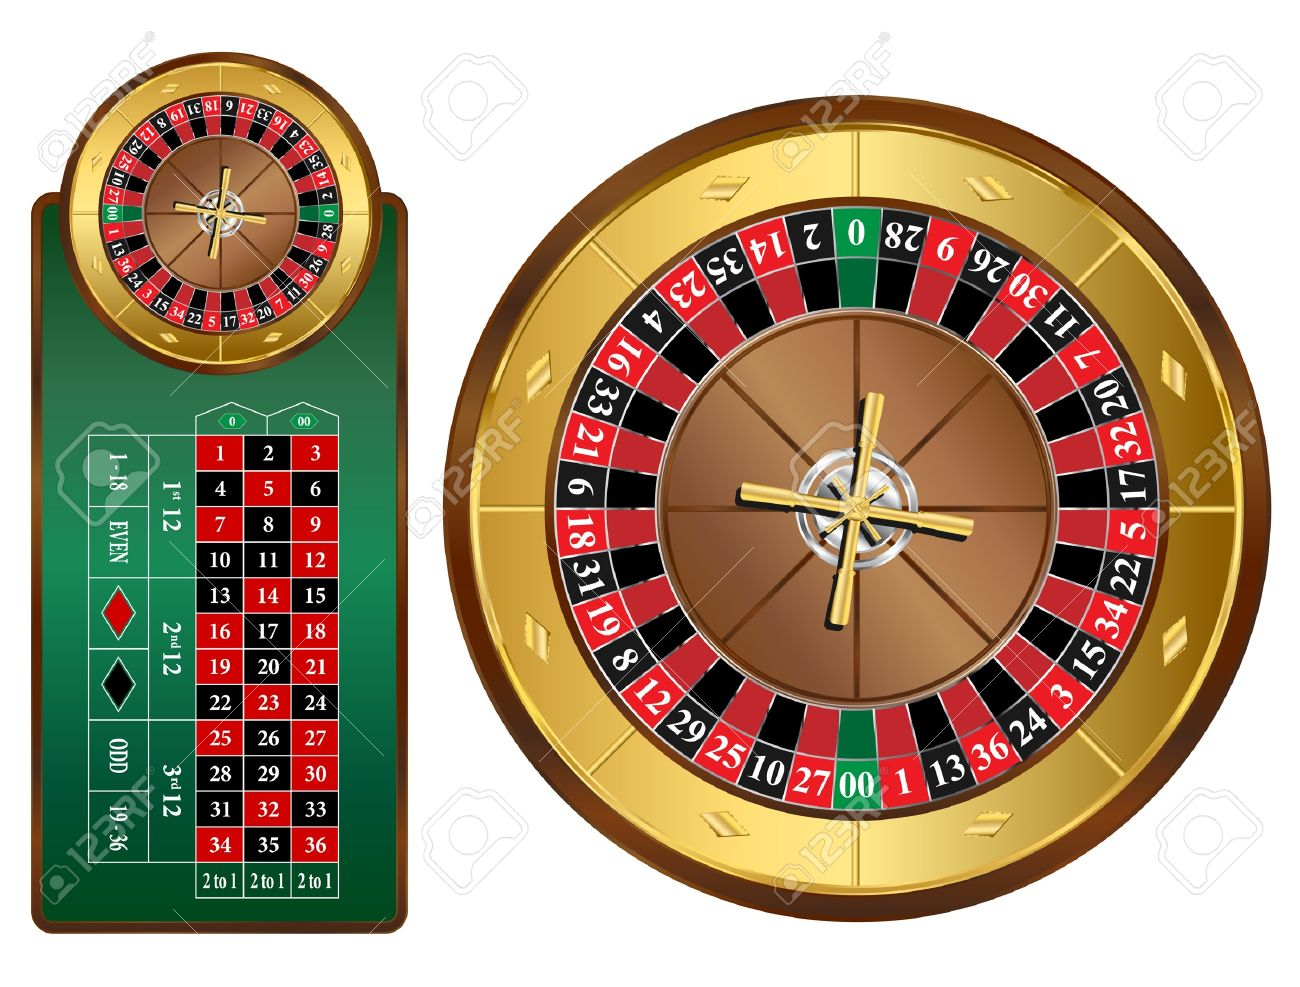 Traditional european roulette table vector illustration stock vector - American Style Roulette Wheel And Table Illustration Stock Vector 12479724